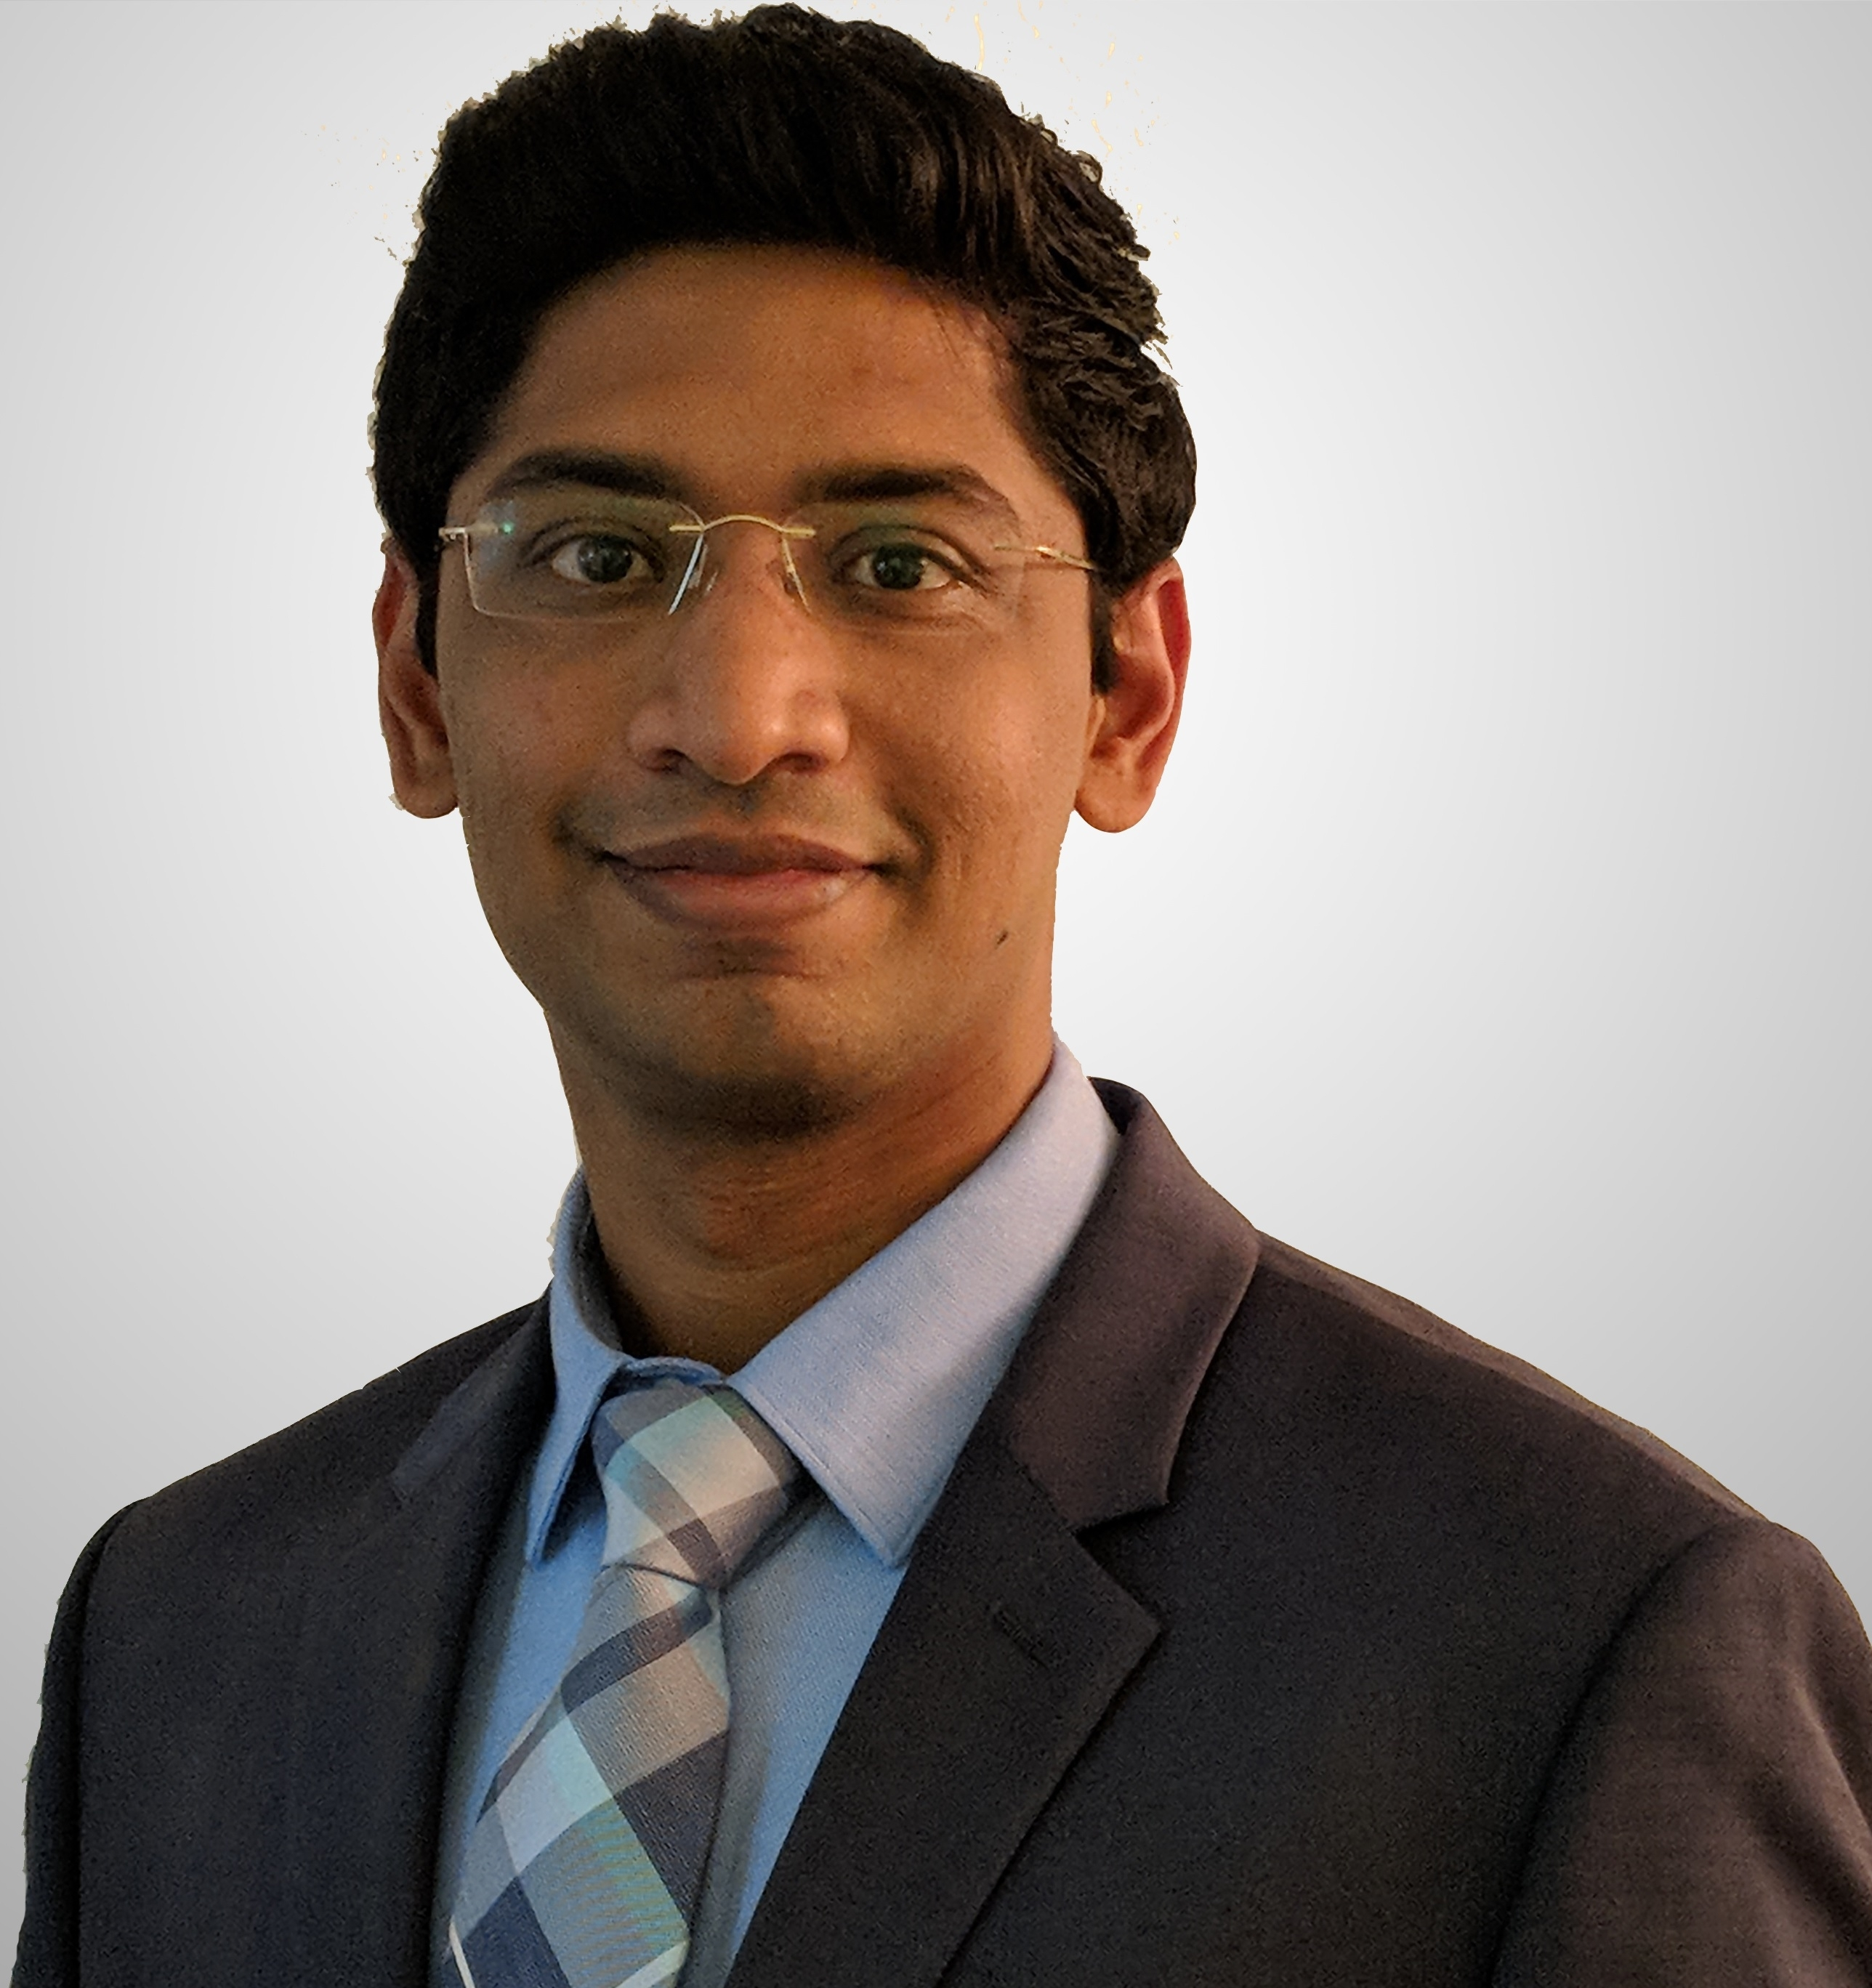 Professional headshot of professor, Dr. Nitesh Kunda in a gray blazer, blue button shirt, plaid tie and white background